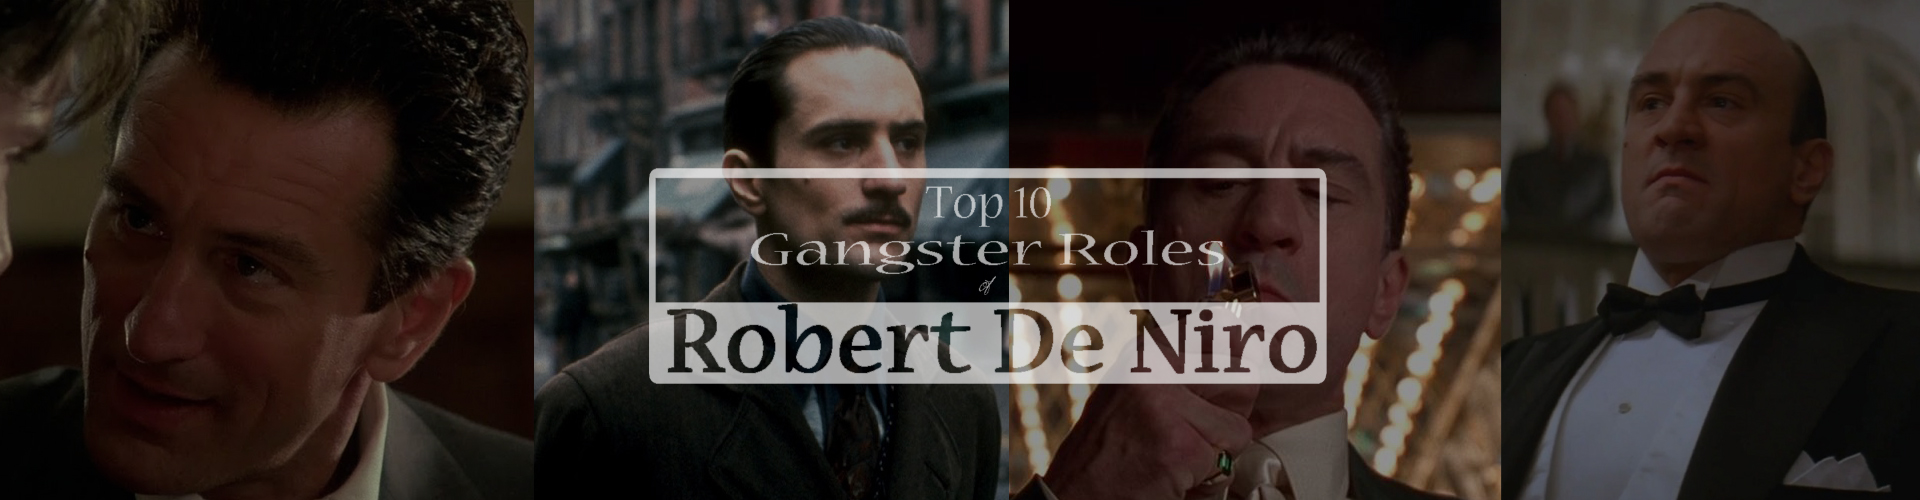 Robert De Niro Top Gangster Roles